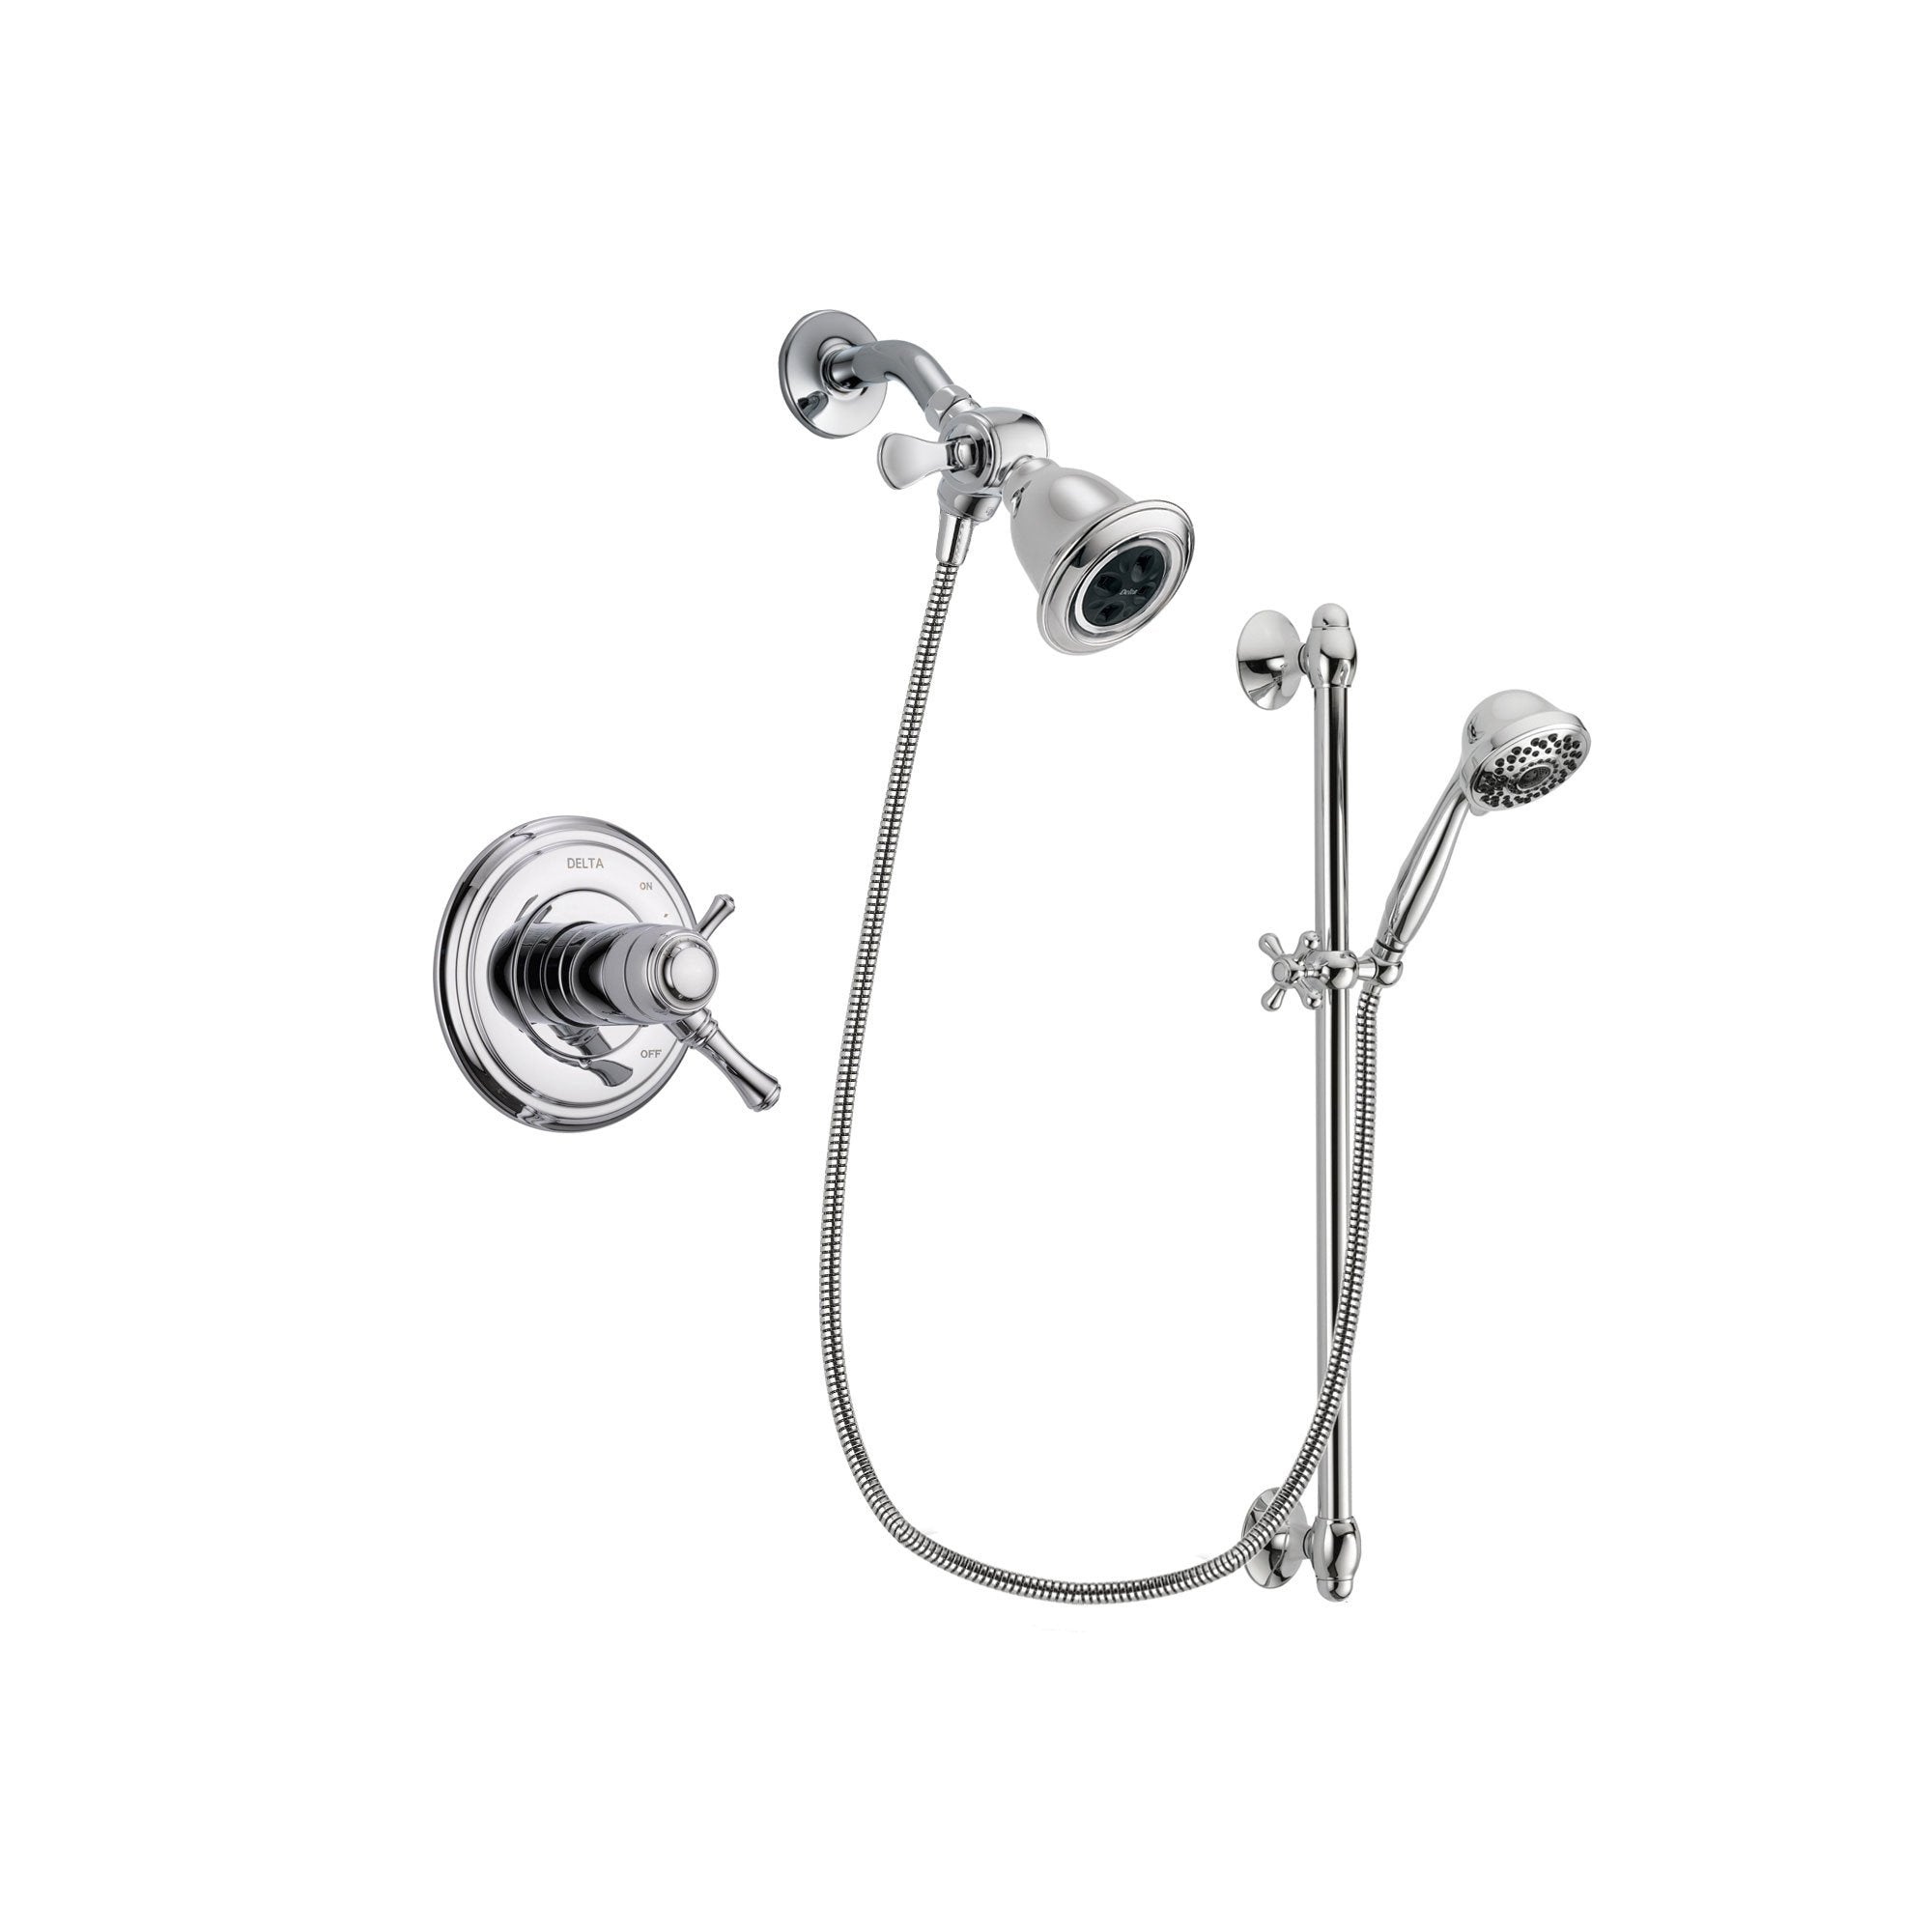 Delta Cassidy Chrome Shower Faucet System w/ Showerhead and Hand Shower DSP0604V